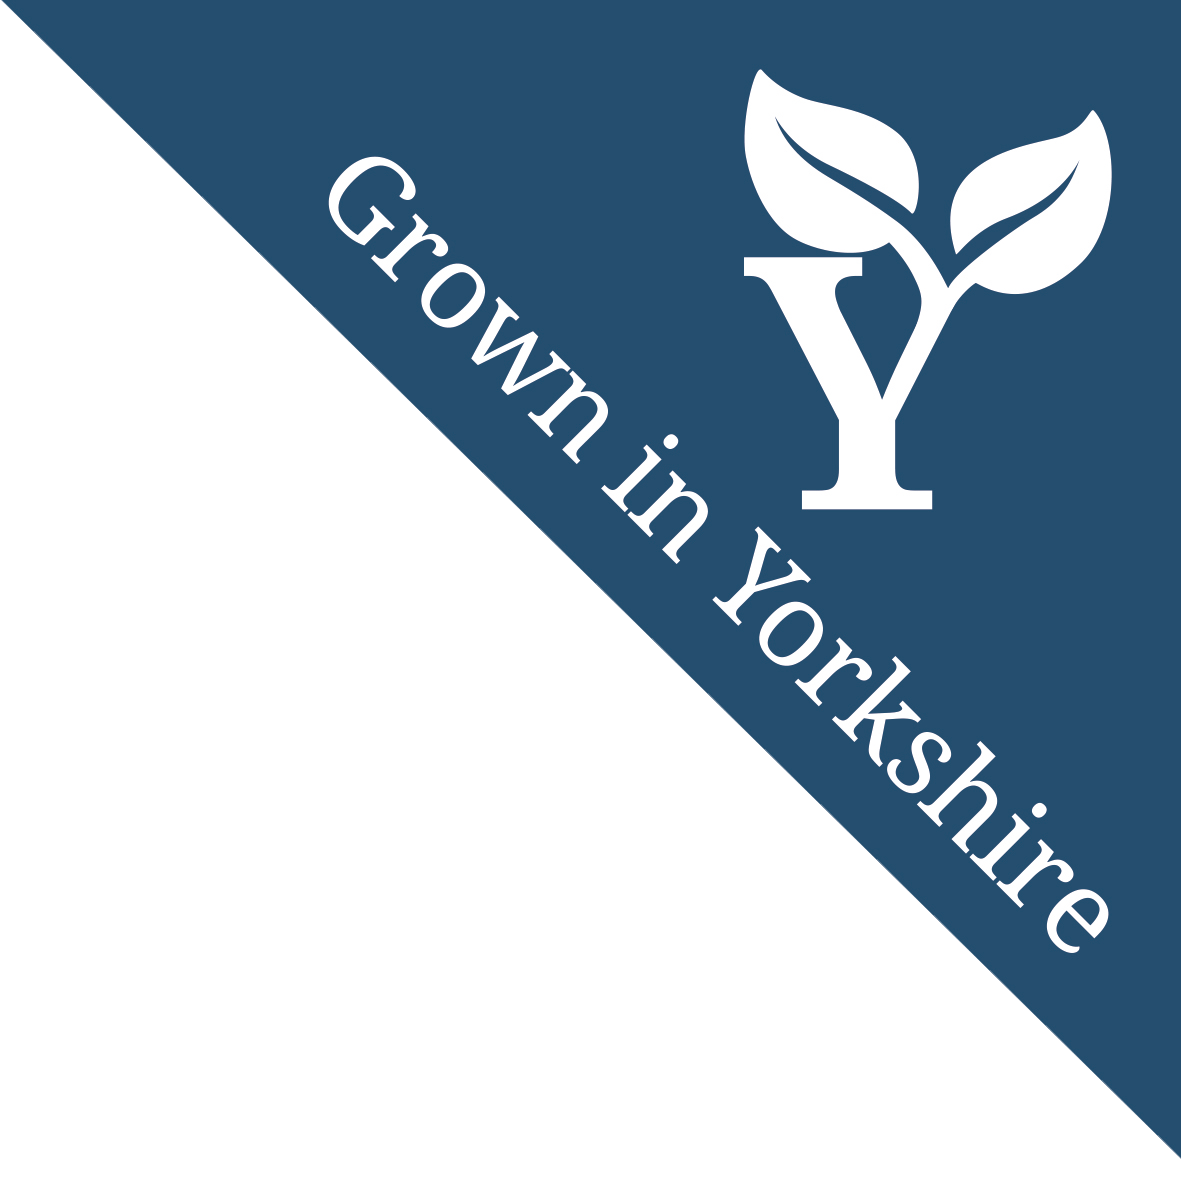 Grown in Yorkshire